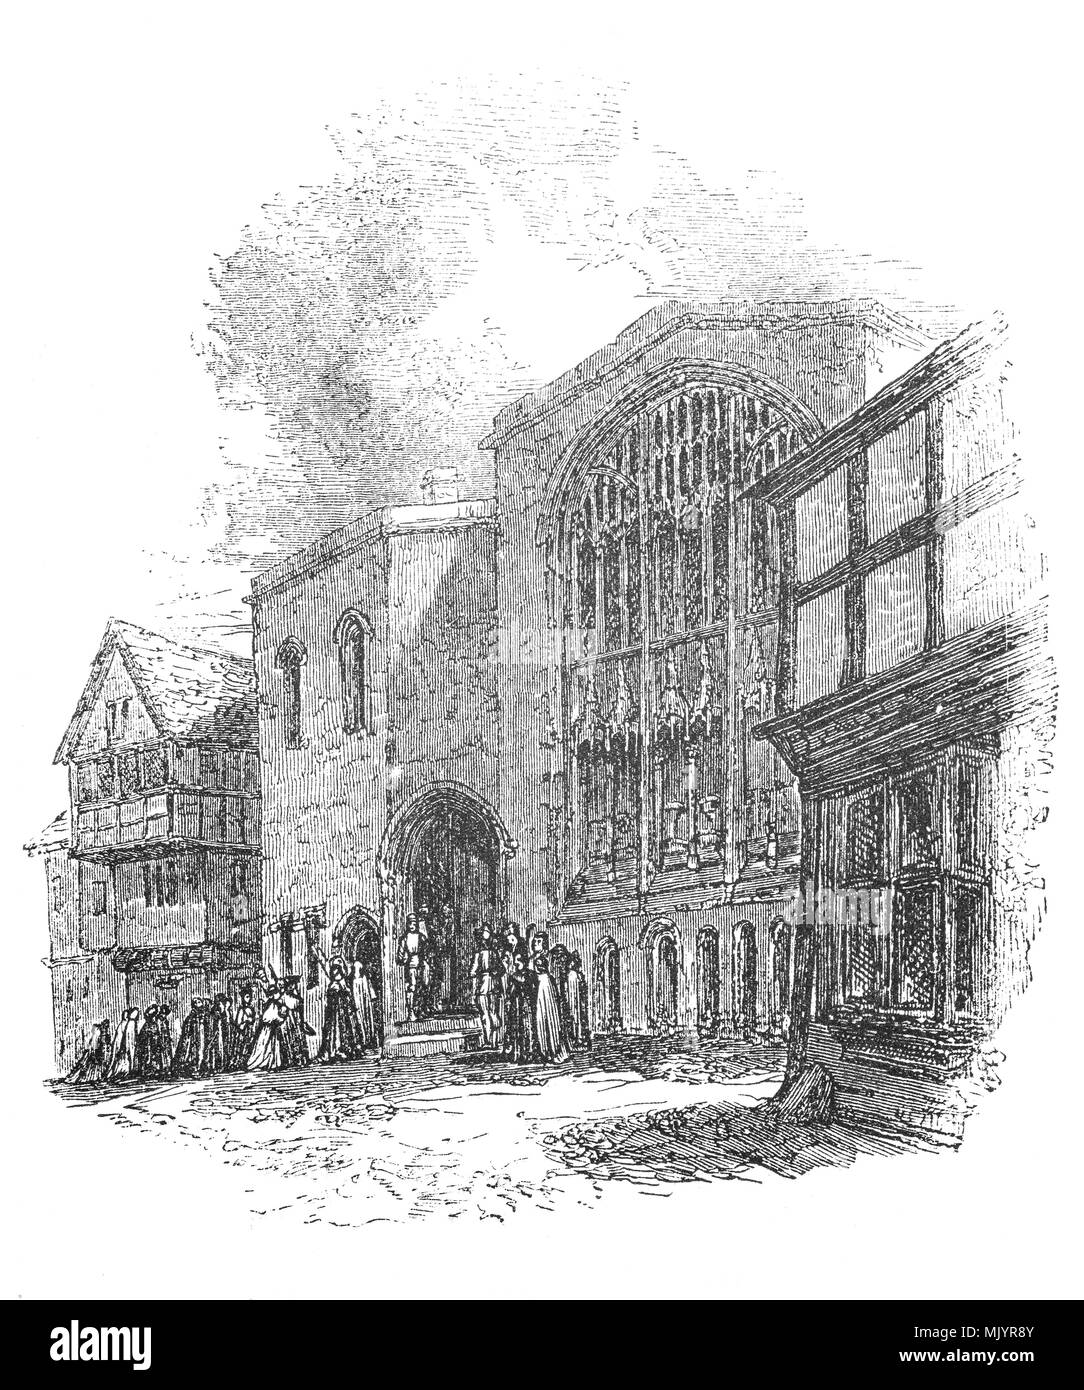 St. Mary's Hall is a guildhall built in Coventry, Warwickshire, England, first built 1340–42.  lt originally served as the headquarters of the united guilds of the Holy Trinity, St. Mary, St. John the Baptist and St. Katherine. Following the suppression of guilds in 1547, for a time it served as the city's armoury and later, its treasury. - Stock Image